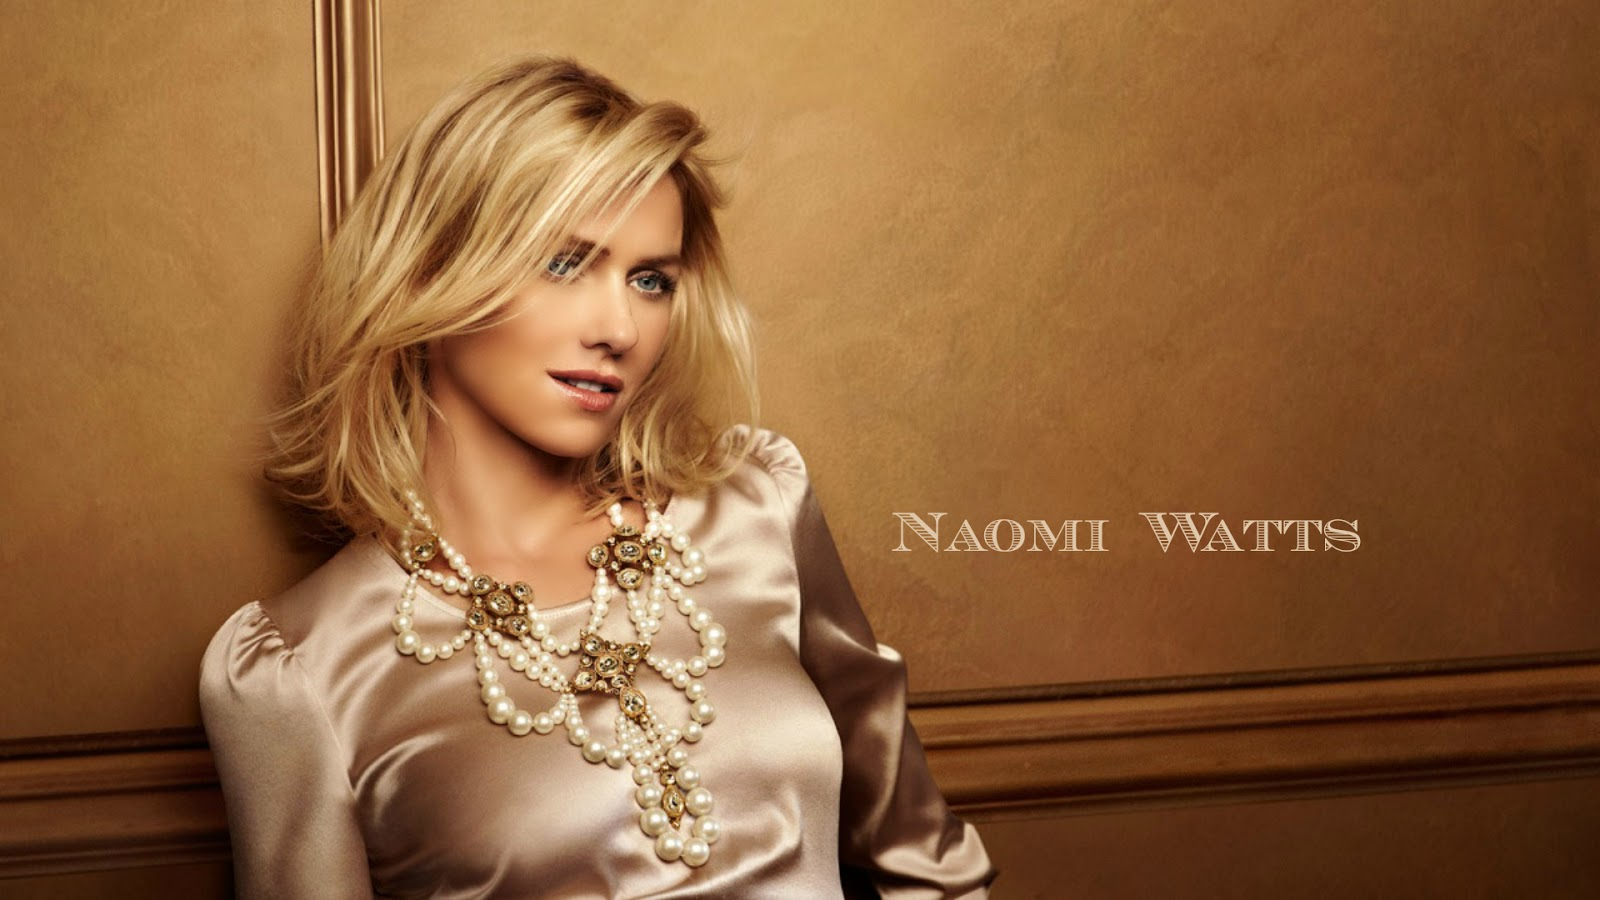 Naomi Watts Wallpapers High Quality Download 1600x900